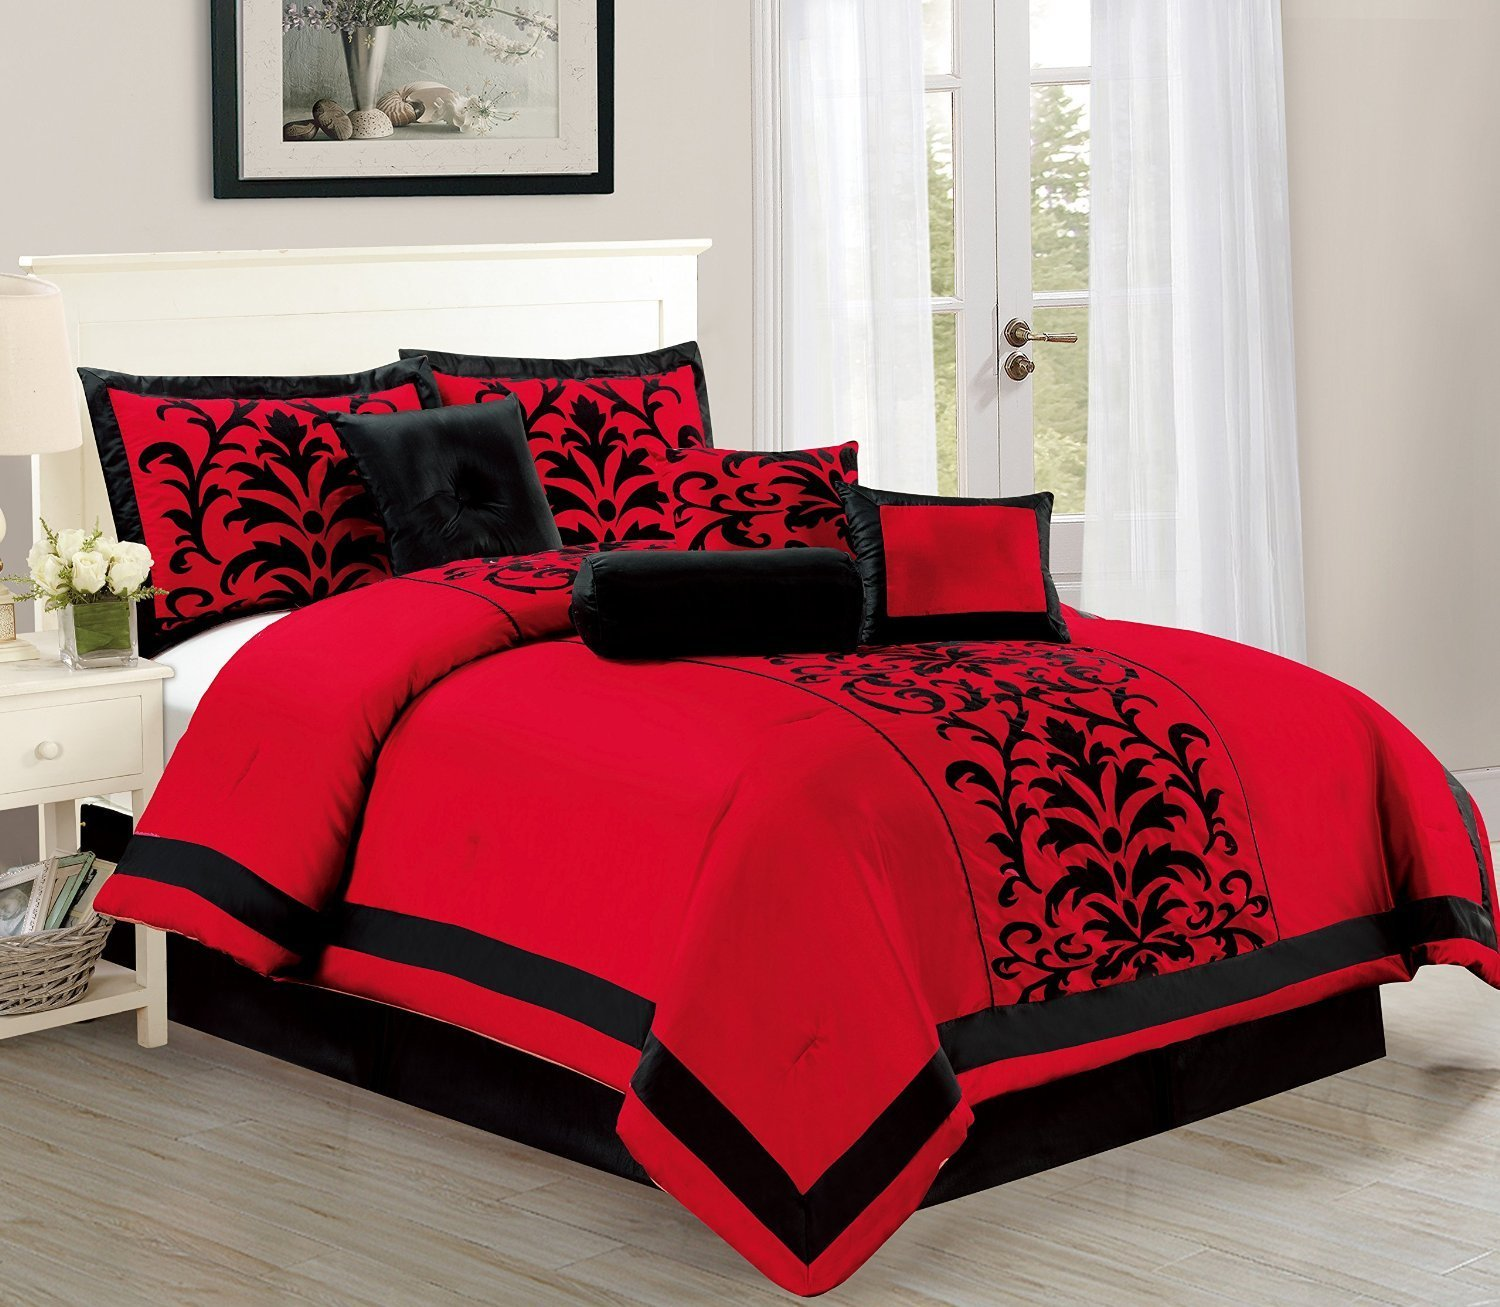 Best linen warehouse inc on walmart seller reviews for Best color bed sheets